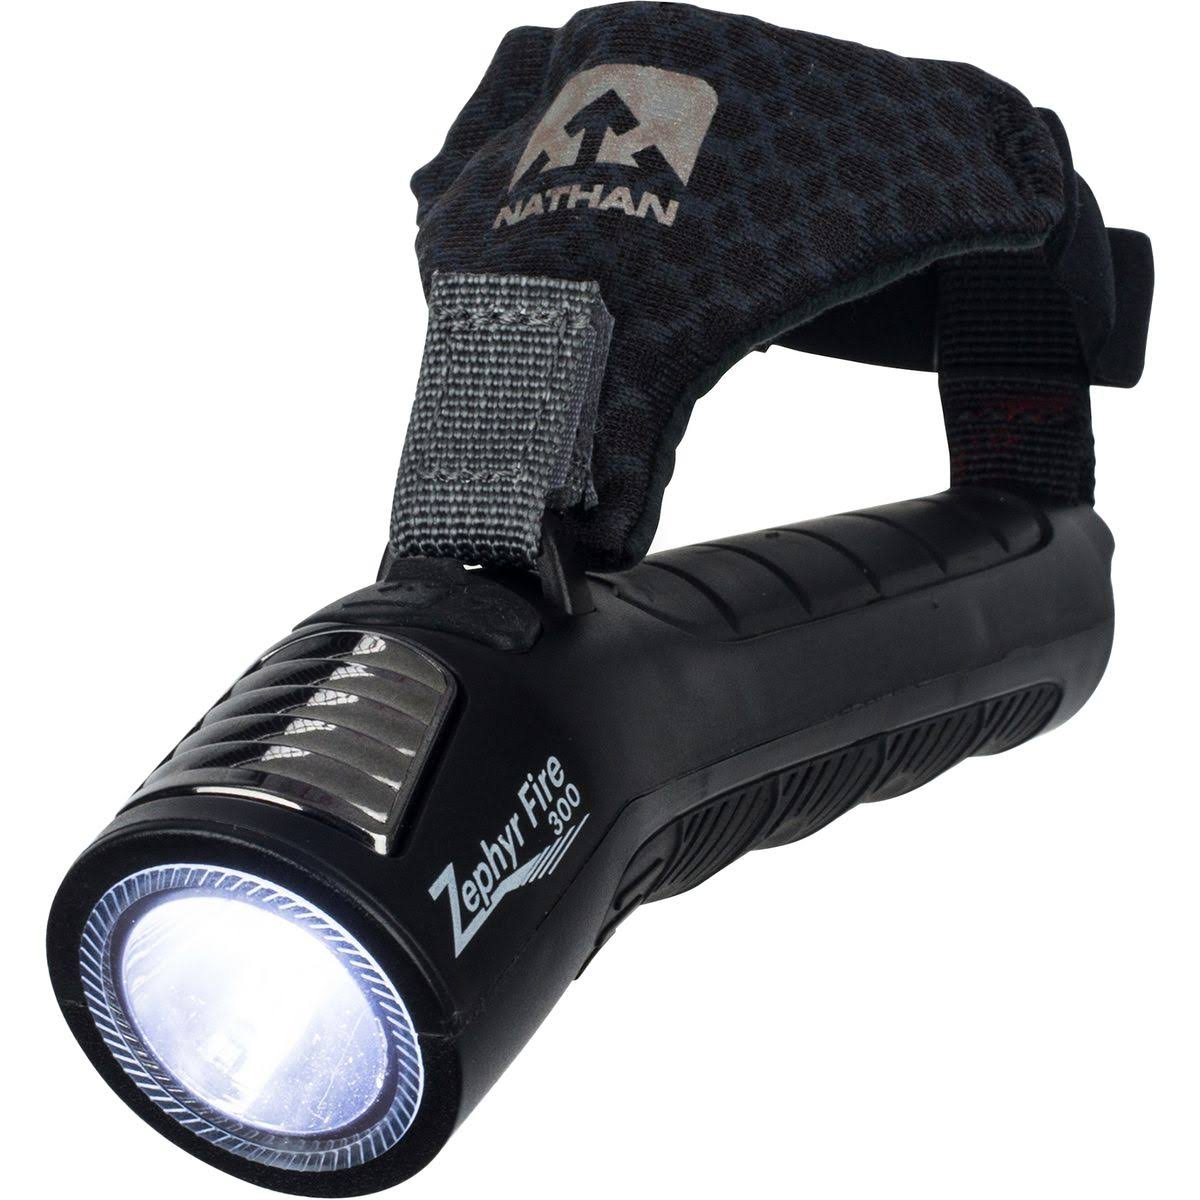 Nathan Zephyr Fire 300 Hand Torch - Black